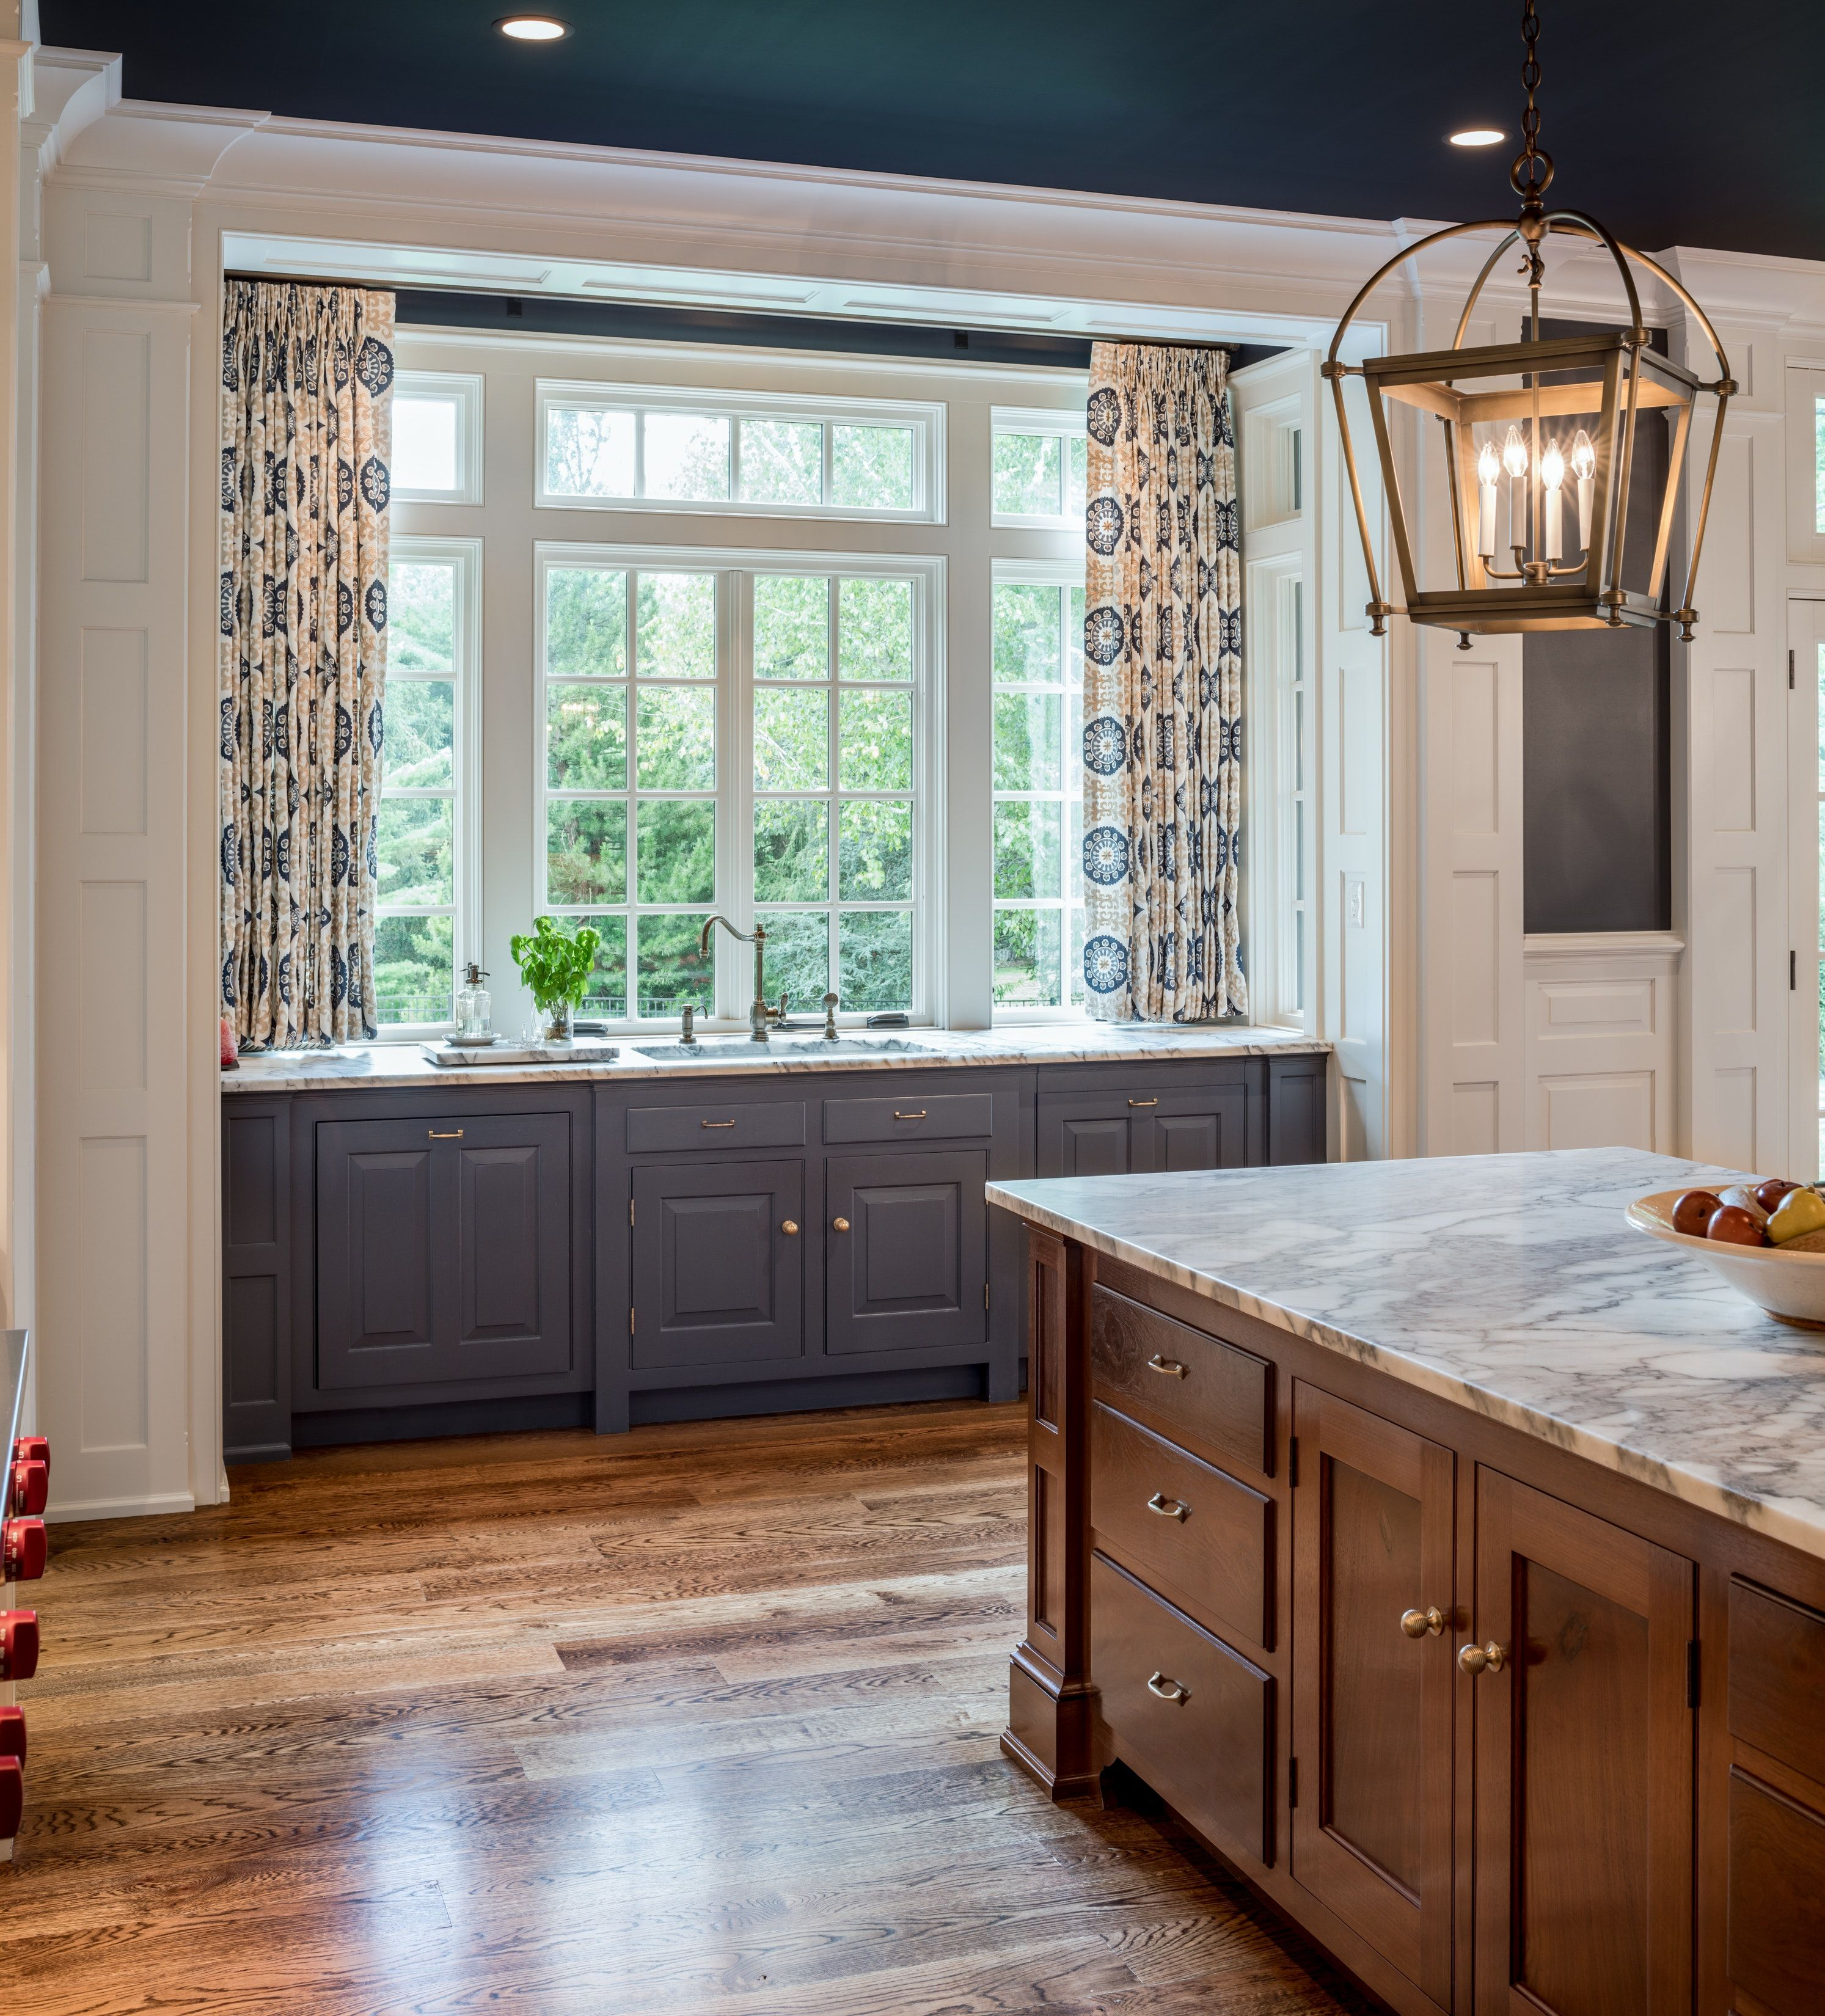 window bay at blue and white kitchen sink in Delaware